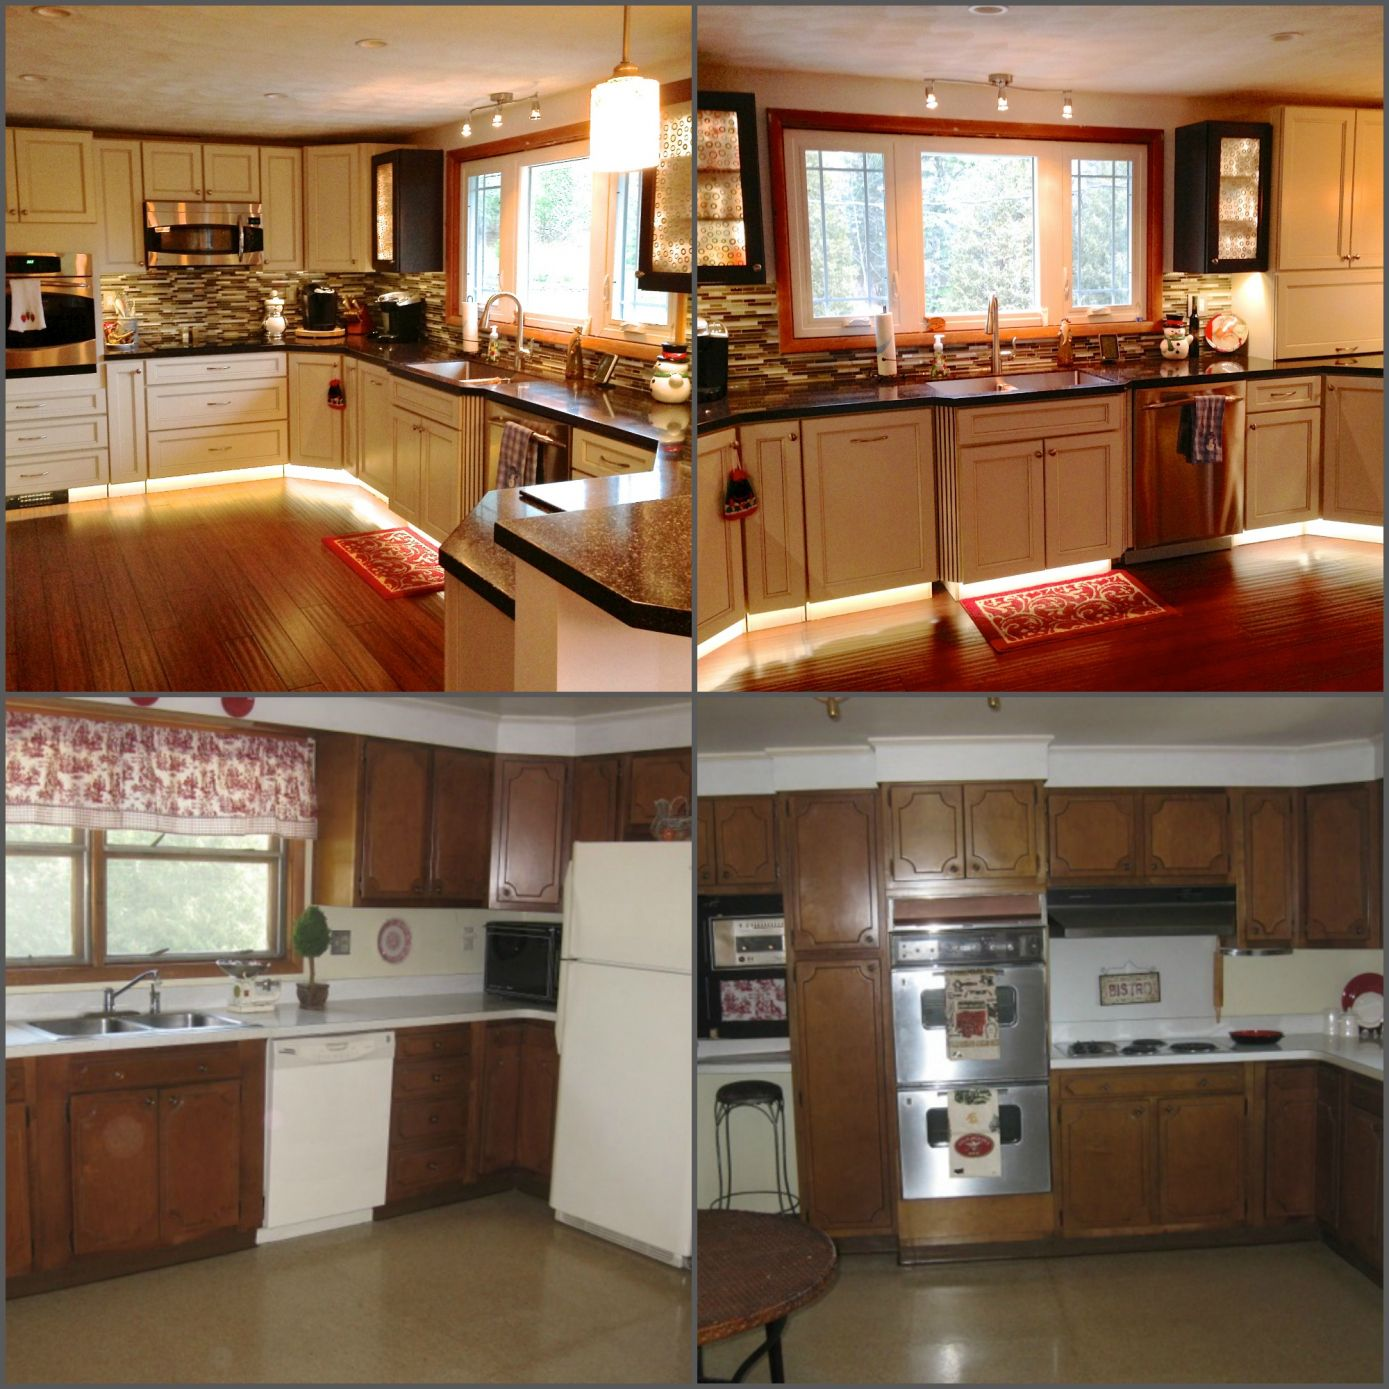 2018 Single Wide Mobile Home Kitchen Remodel Best Interior Paint Brands Check More At Manufactured Home Remodel Mobile Home Kitchens Remodeling Mobile Homes